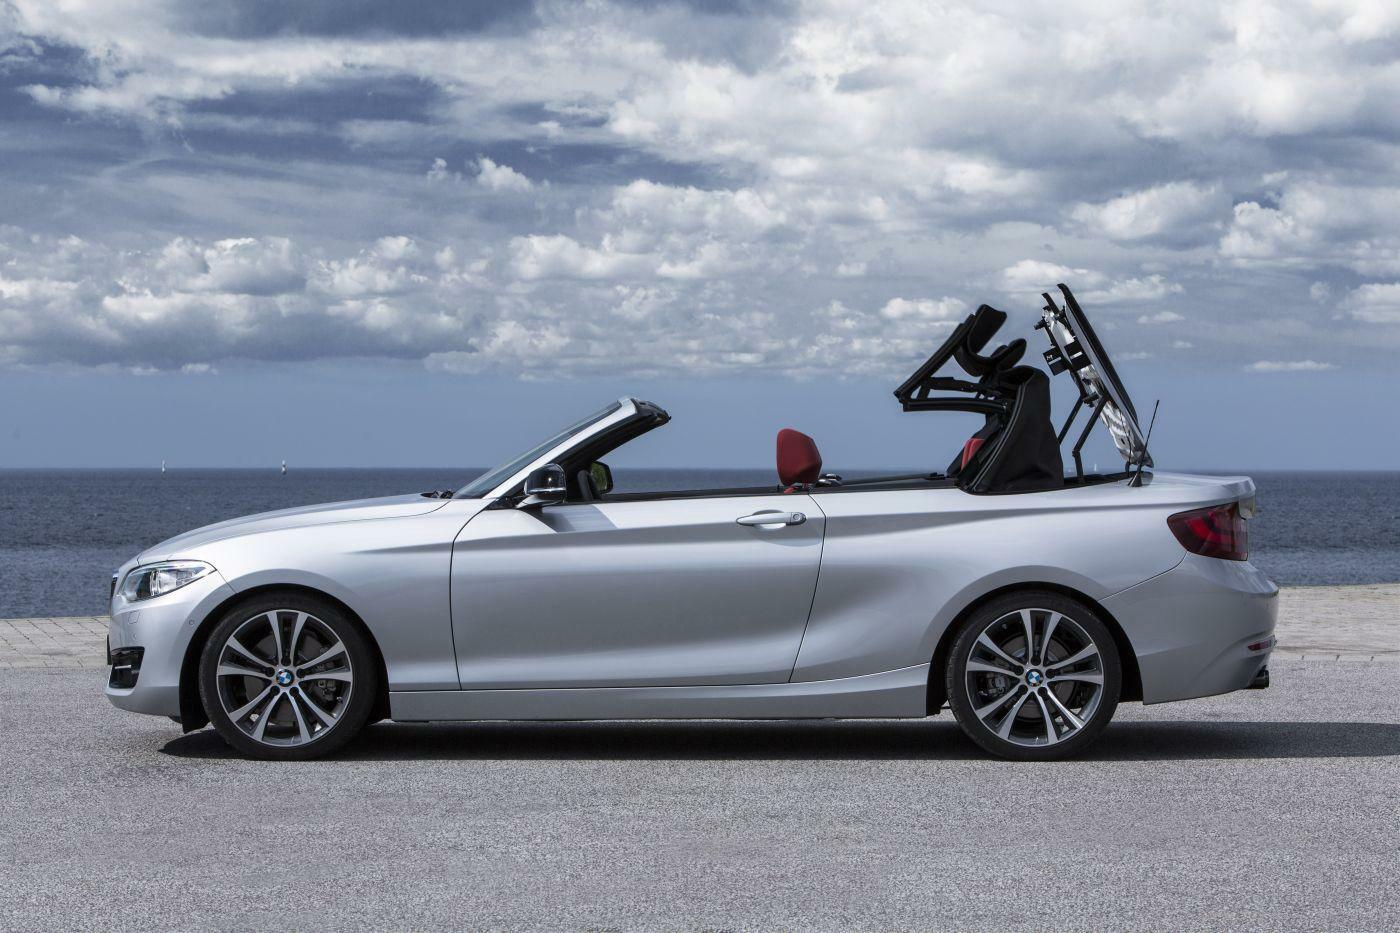 fahrbericht bmw 228i cabriolet ein cabrio f r alle f lle. Black Bedroom Furniture Sets. Home Design Ideas